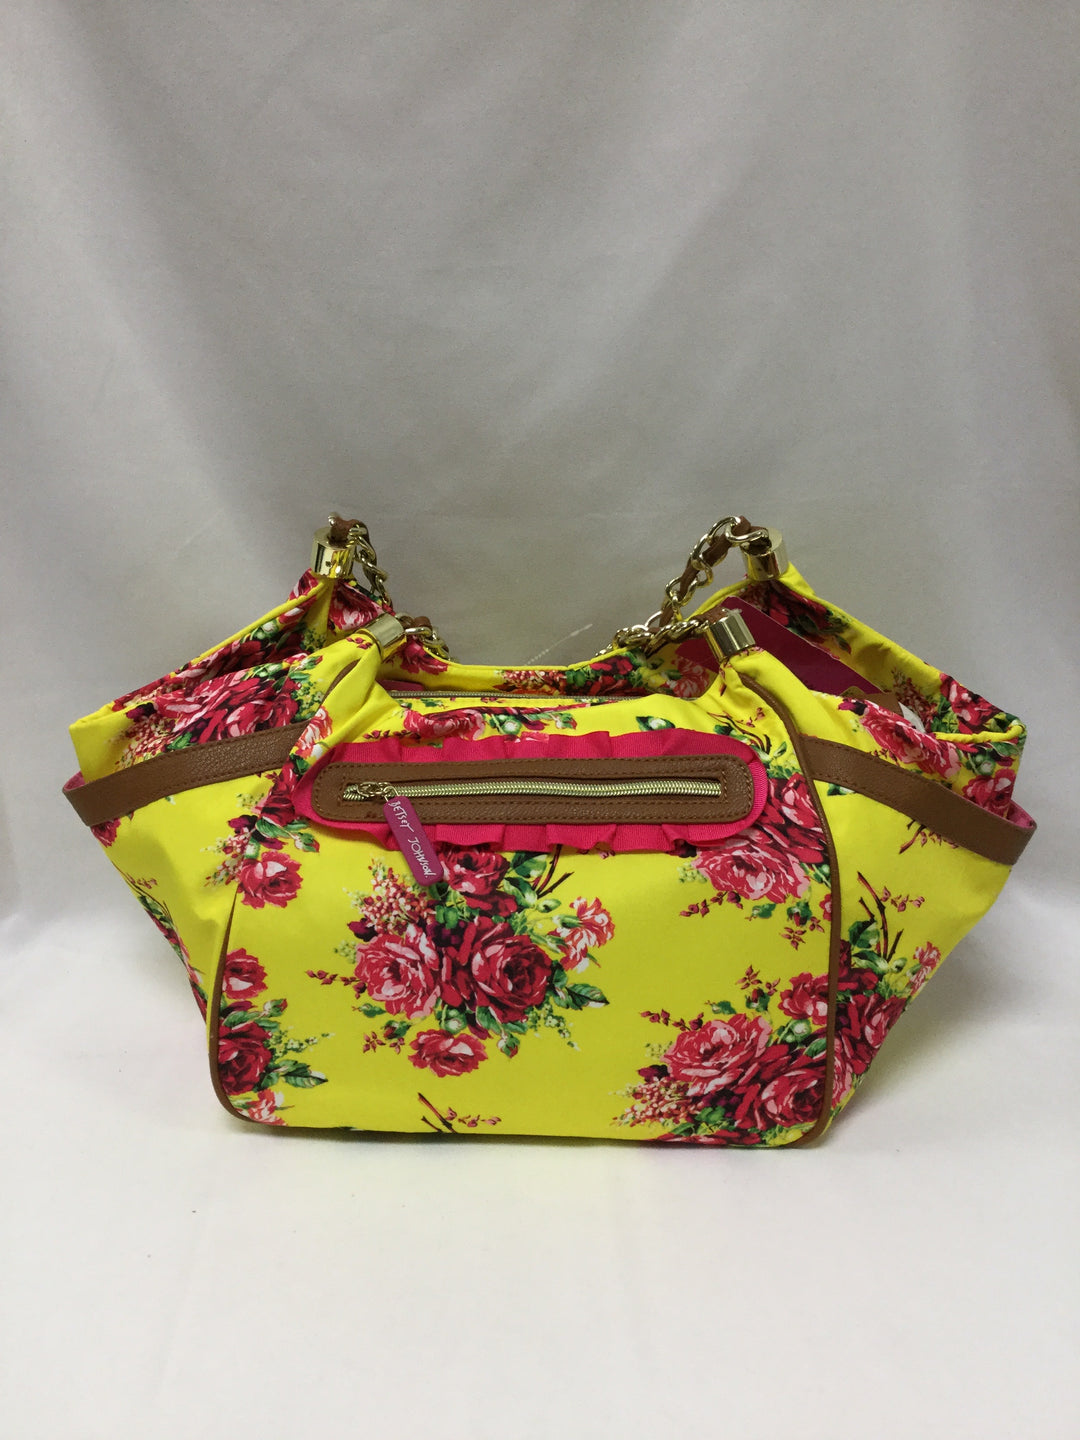 Primary Photo - BRAND: BETSEY JOHNSON <BR>STYLE: HANDBAG <BR>COLOR: YELLOW <BR>SIZE: LARGE <BR>SKU: 155-15599-234481